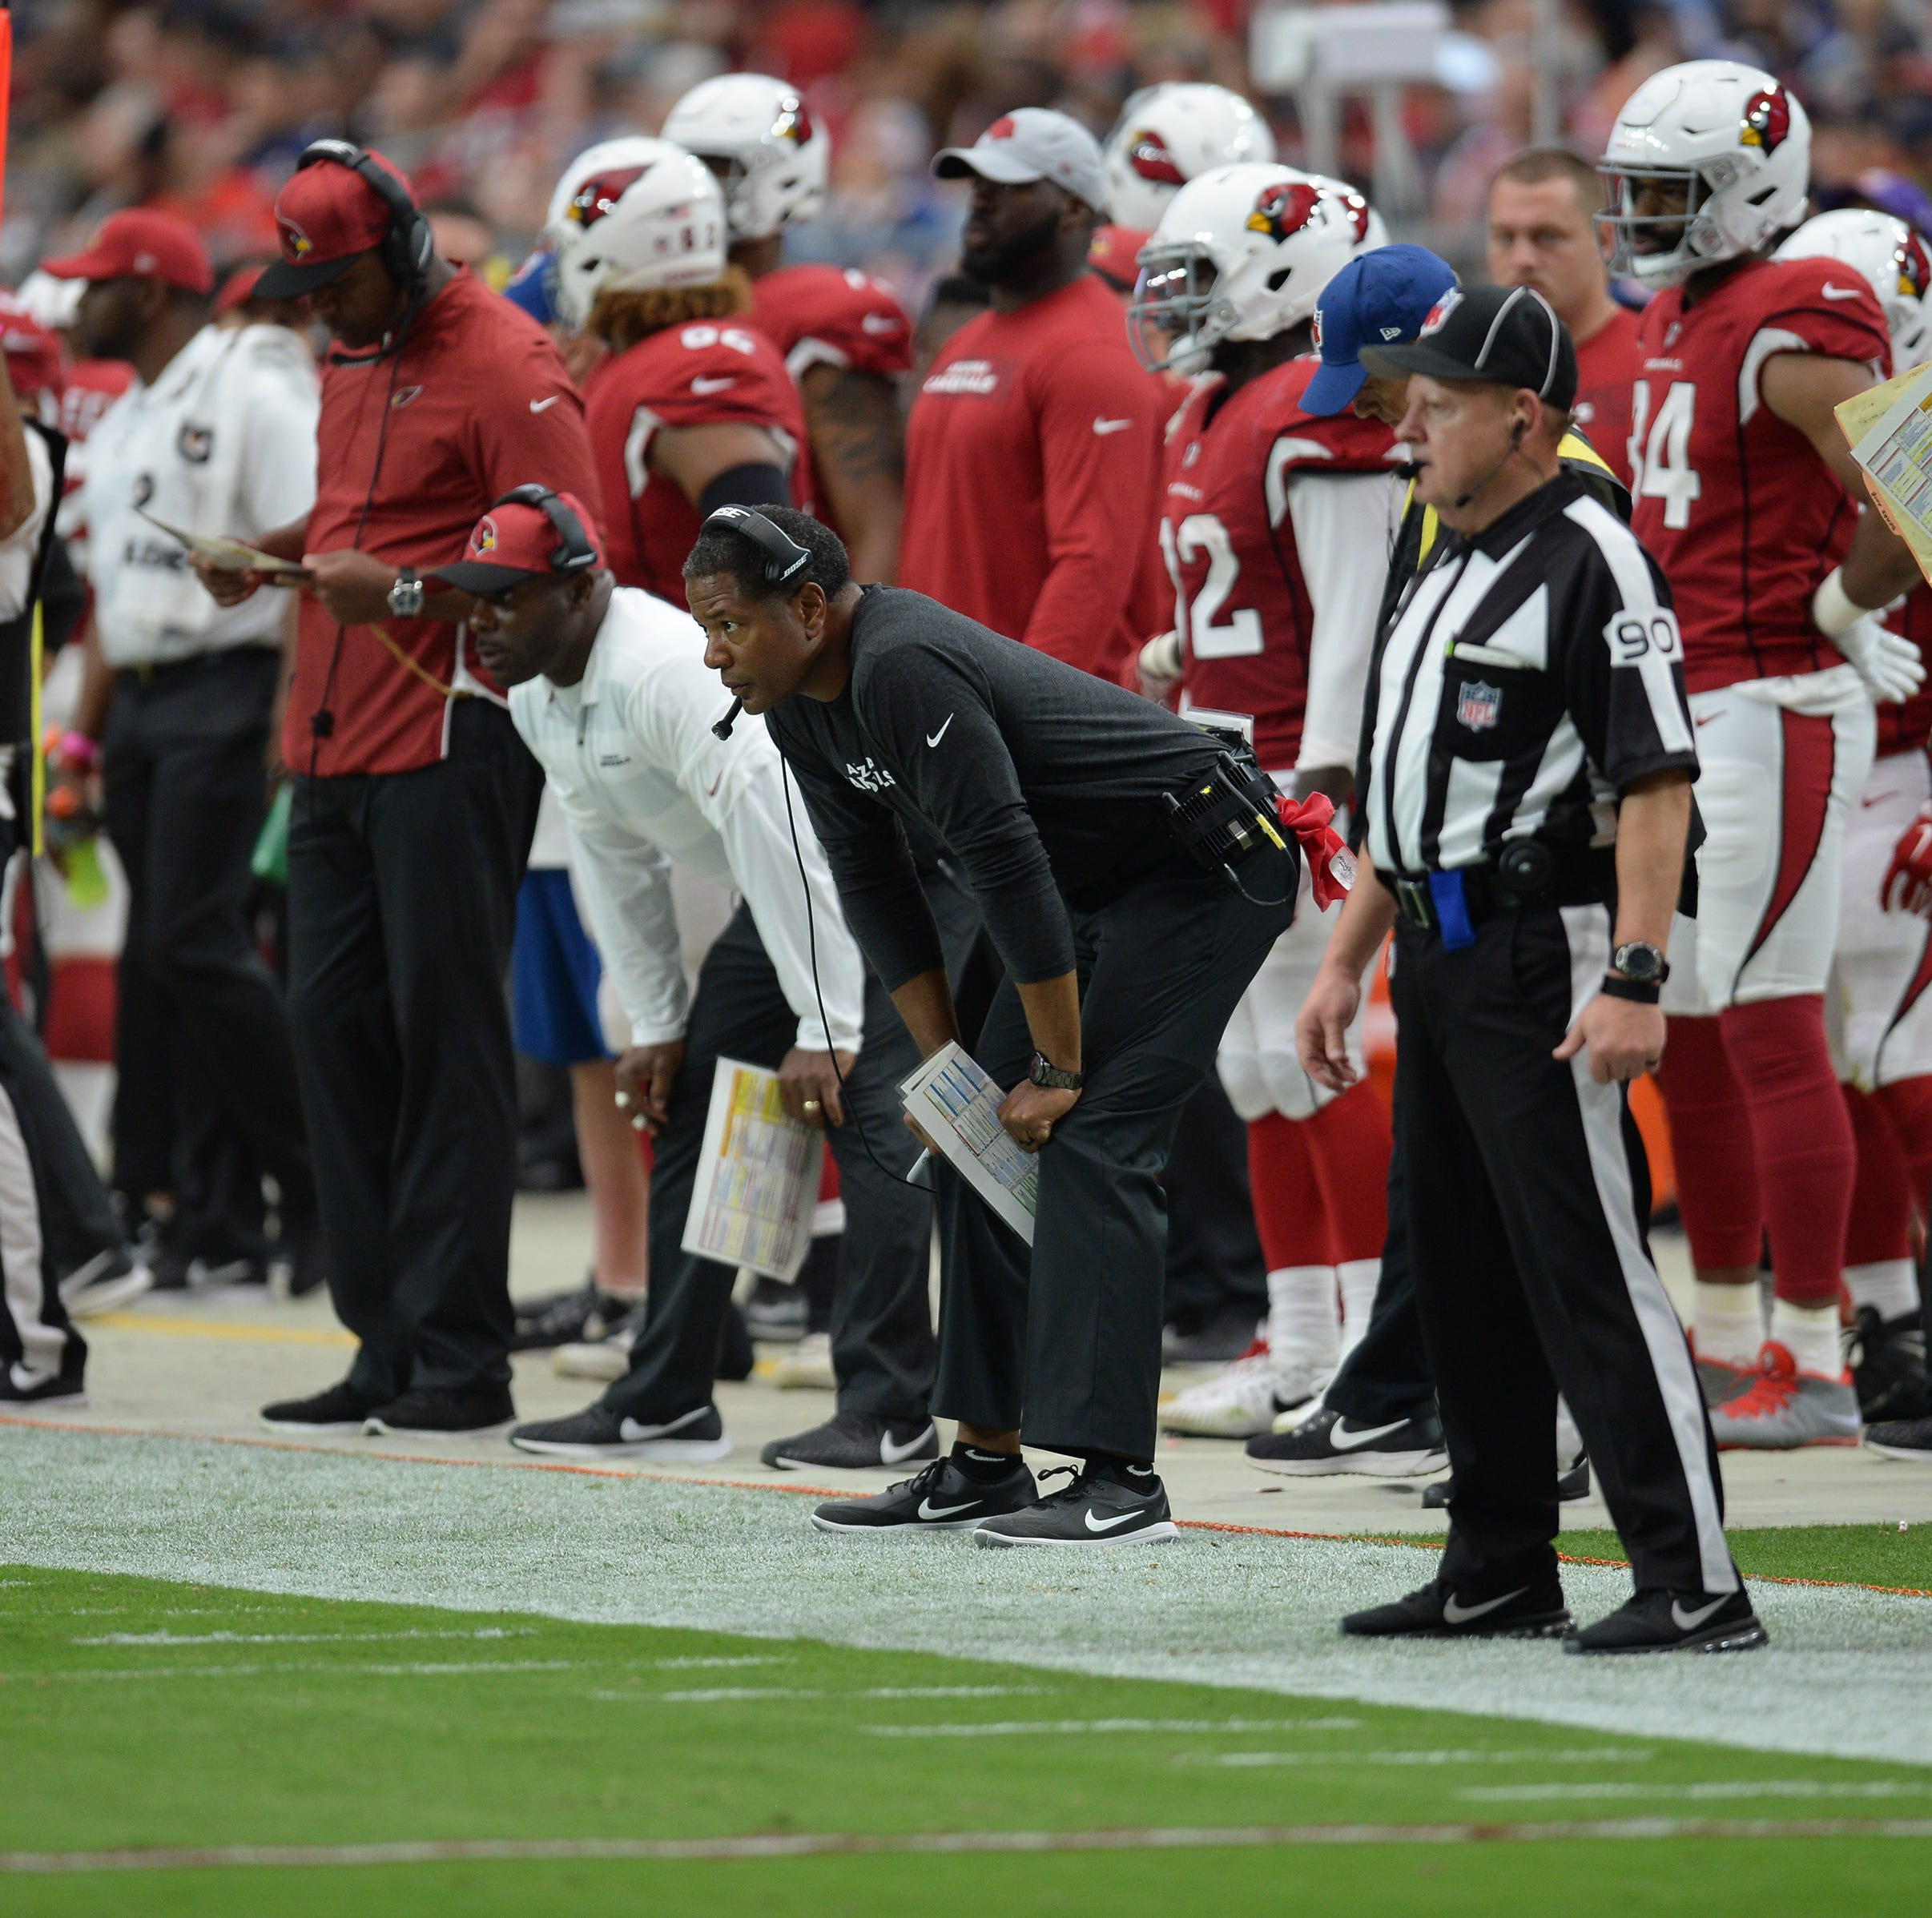 NFL pundits question Arizona Cardinals, coaching staff after loss to Chicago Bears